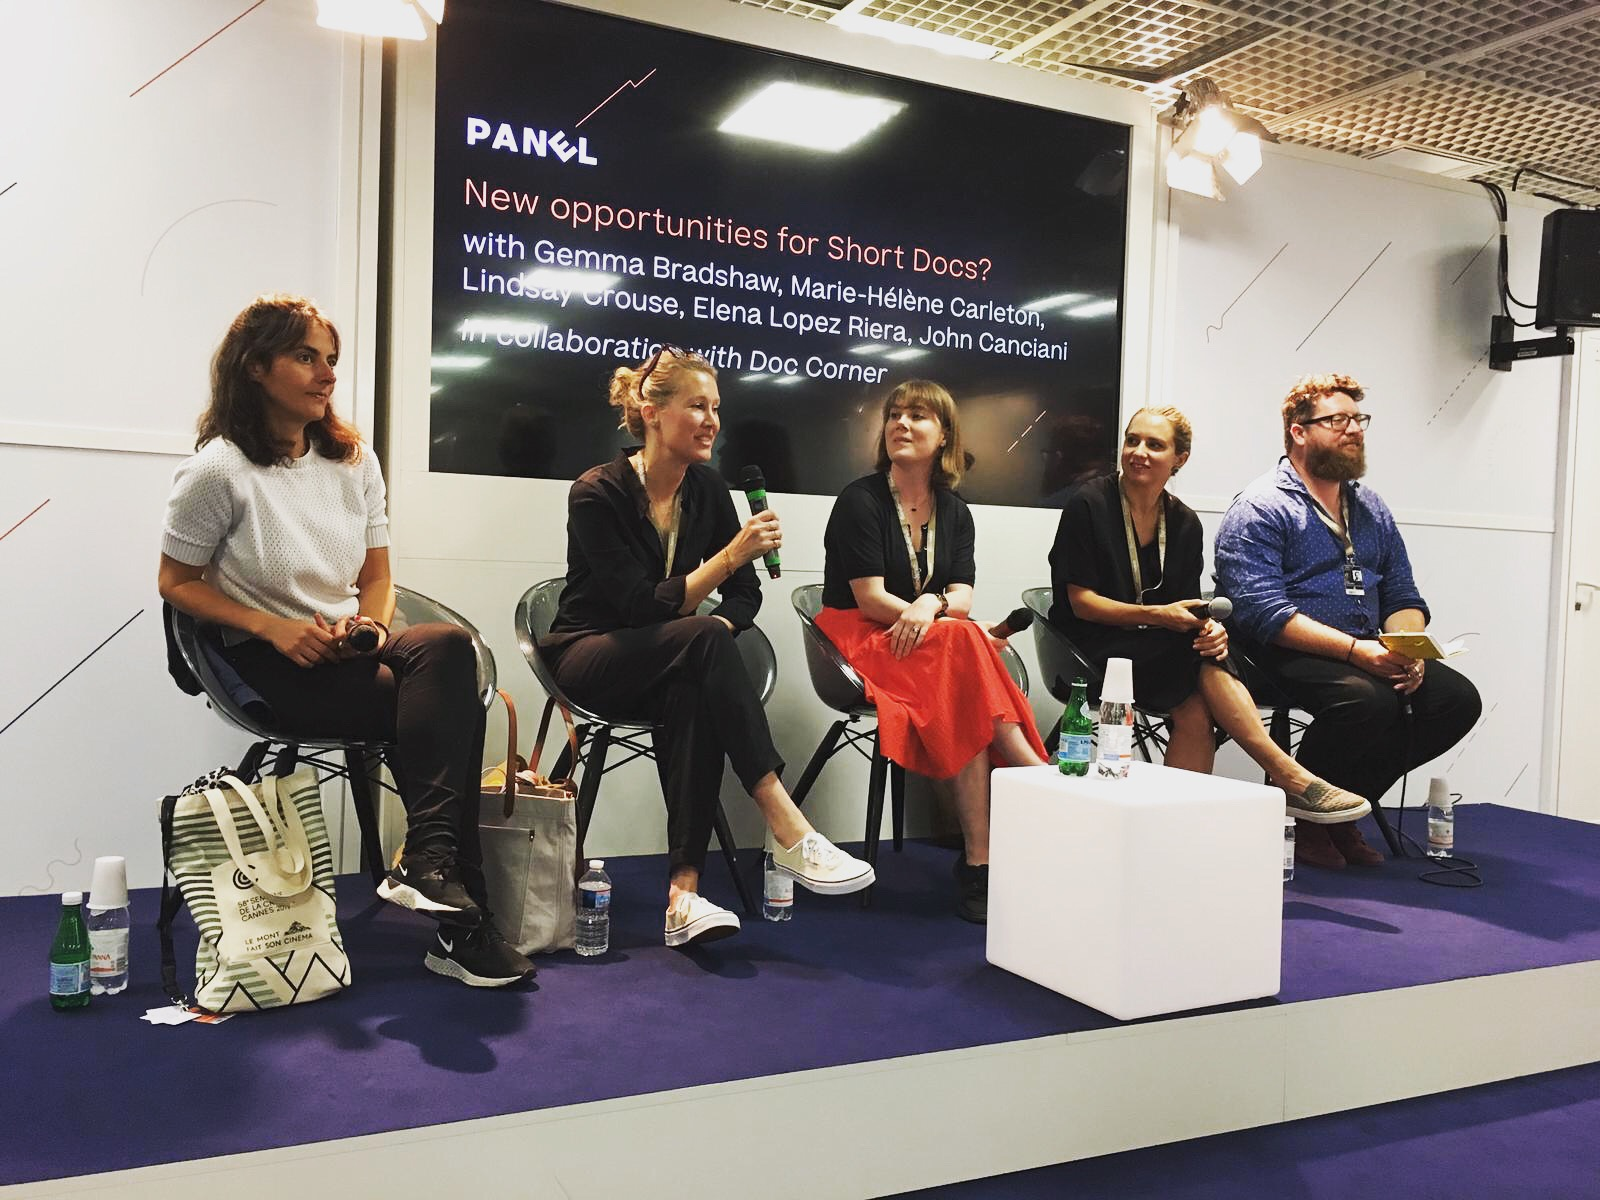 Marie-Hélène joins New Opportunities for Short Docs panel at Cannes - The Cannes Doc Corner panel discussed the current state and future landscape of short documentary films, tackling current issues like sustainability in filmmaking.Click here to read more.